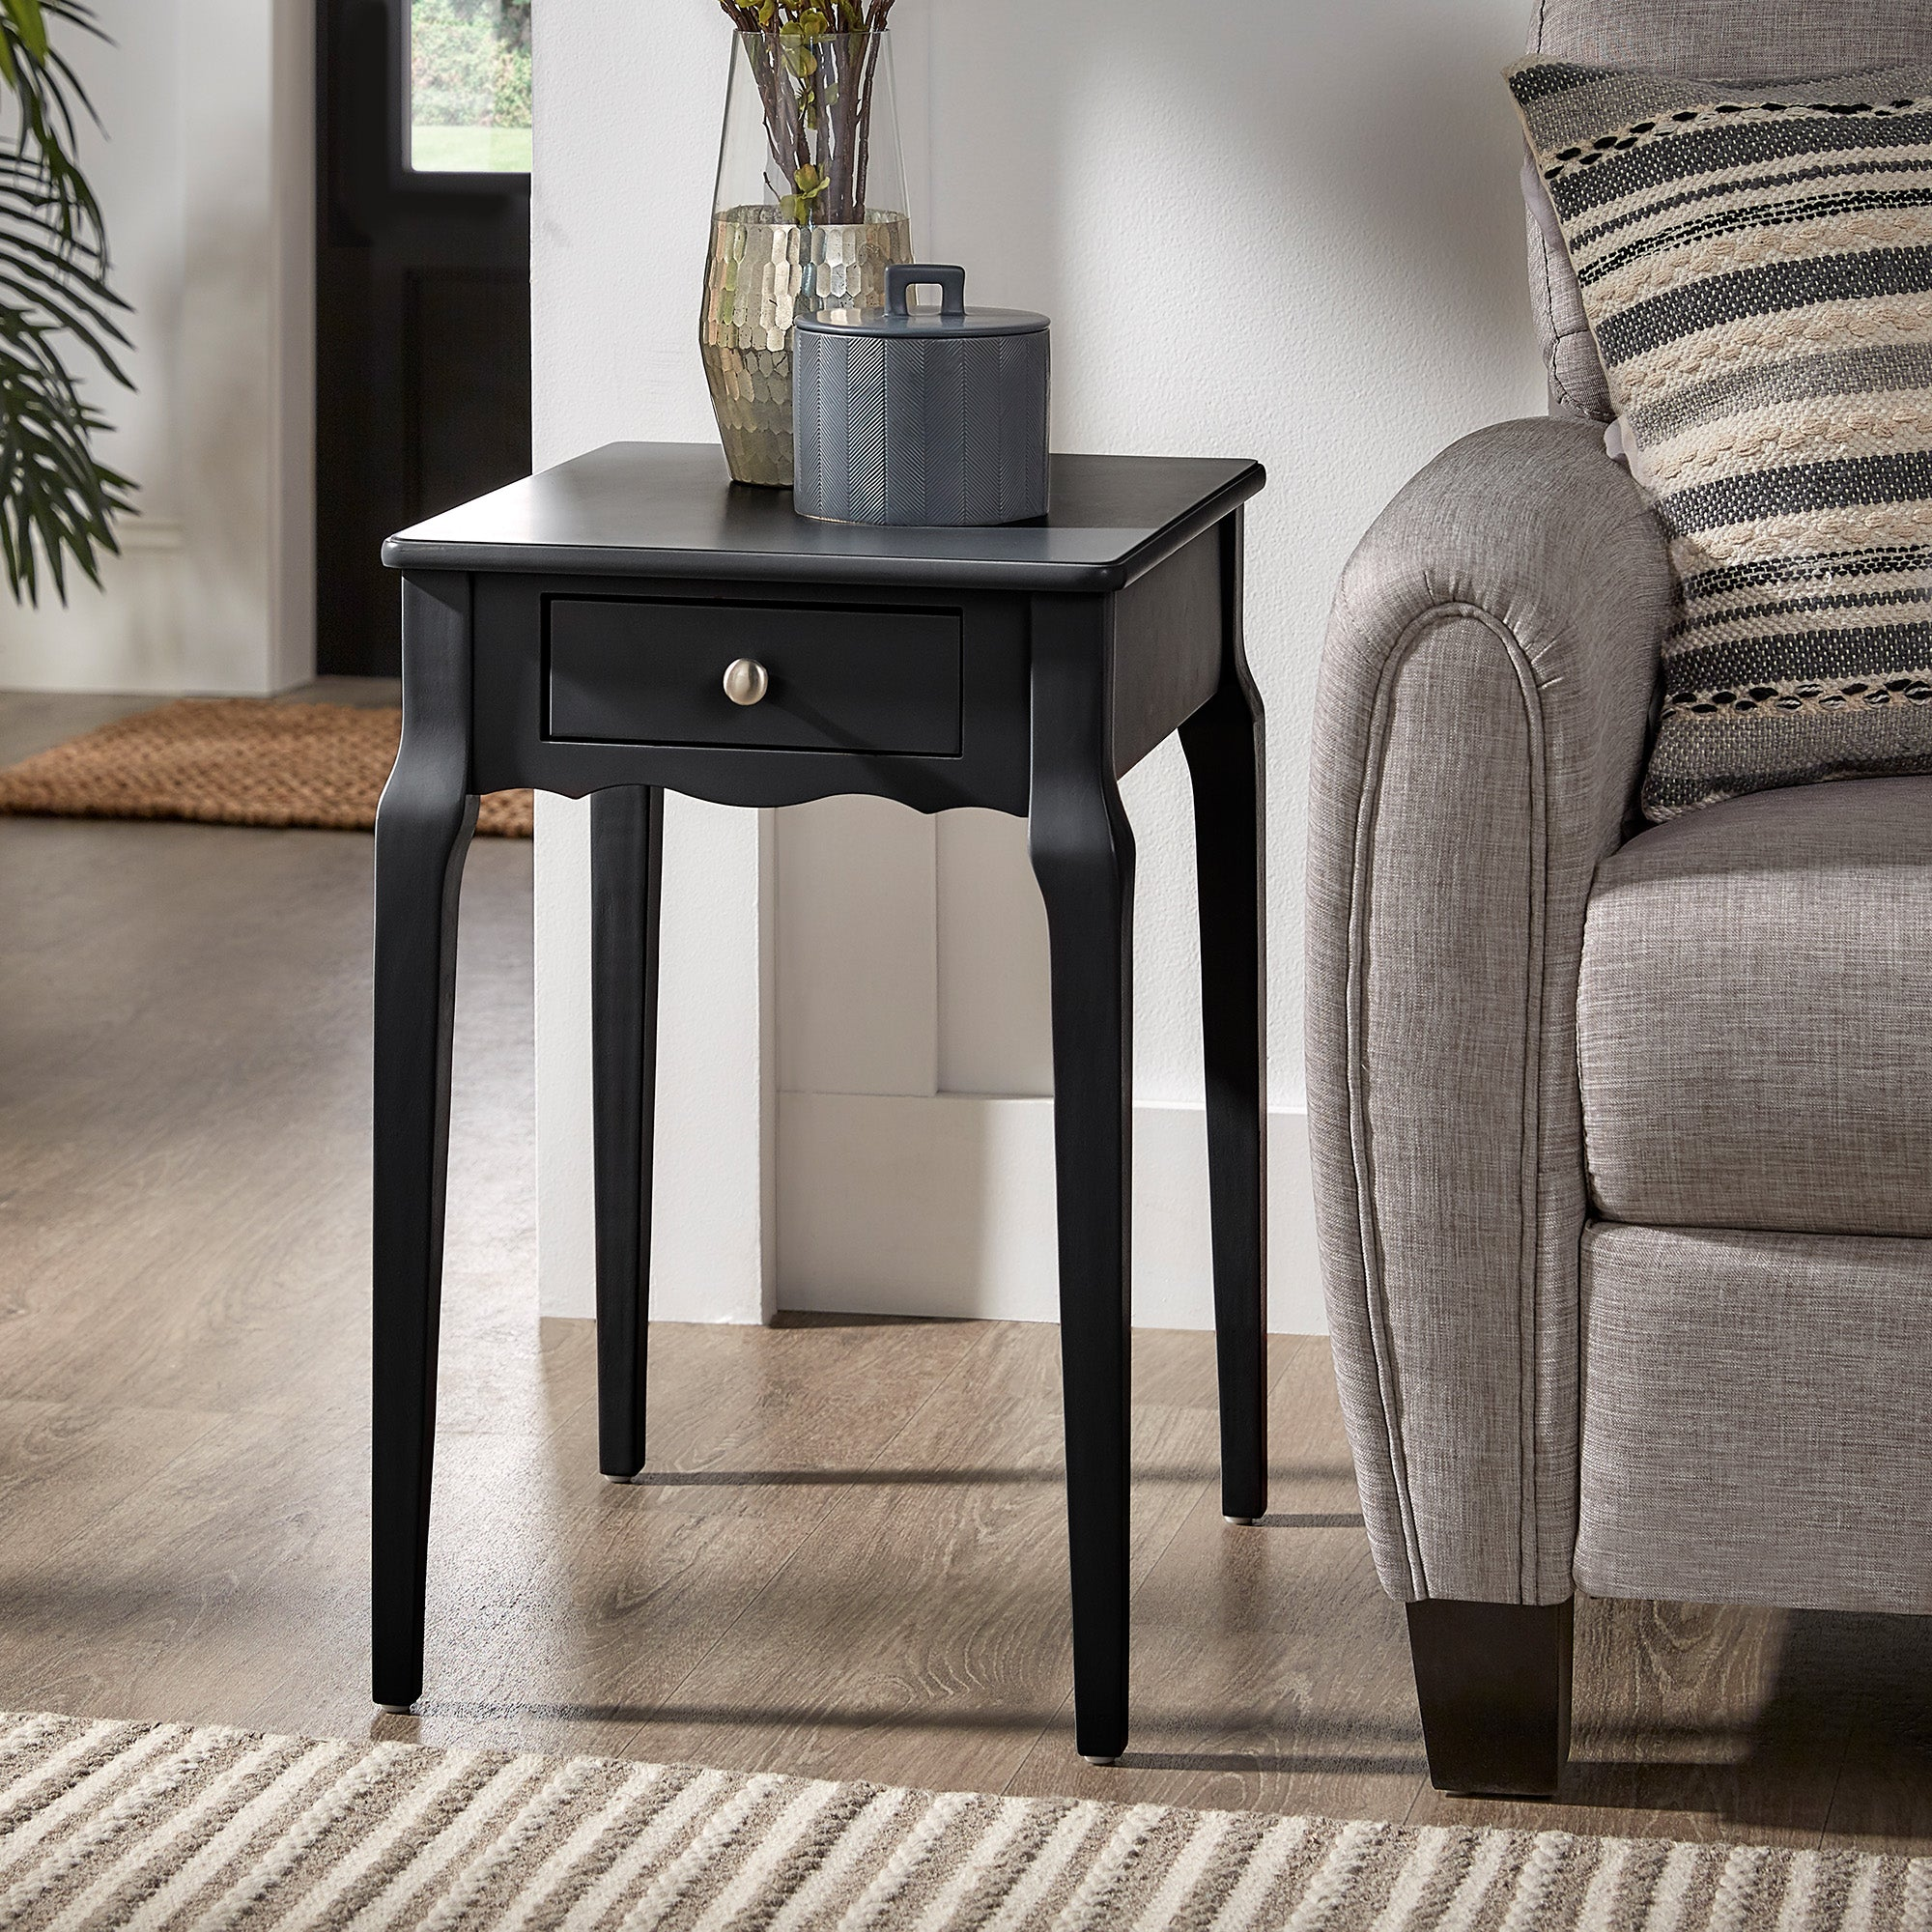 1-Drawer Storage Side Table - Black